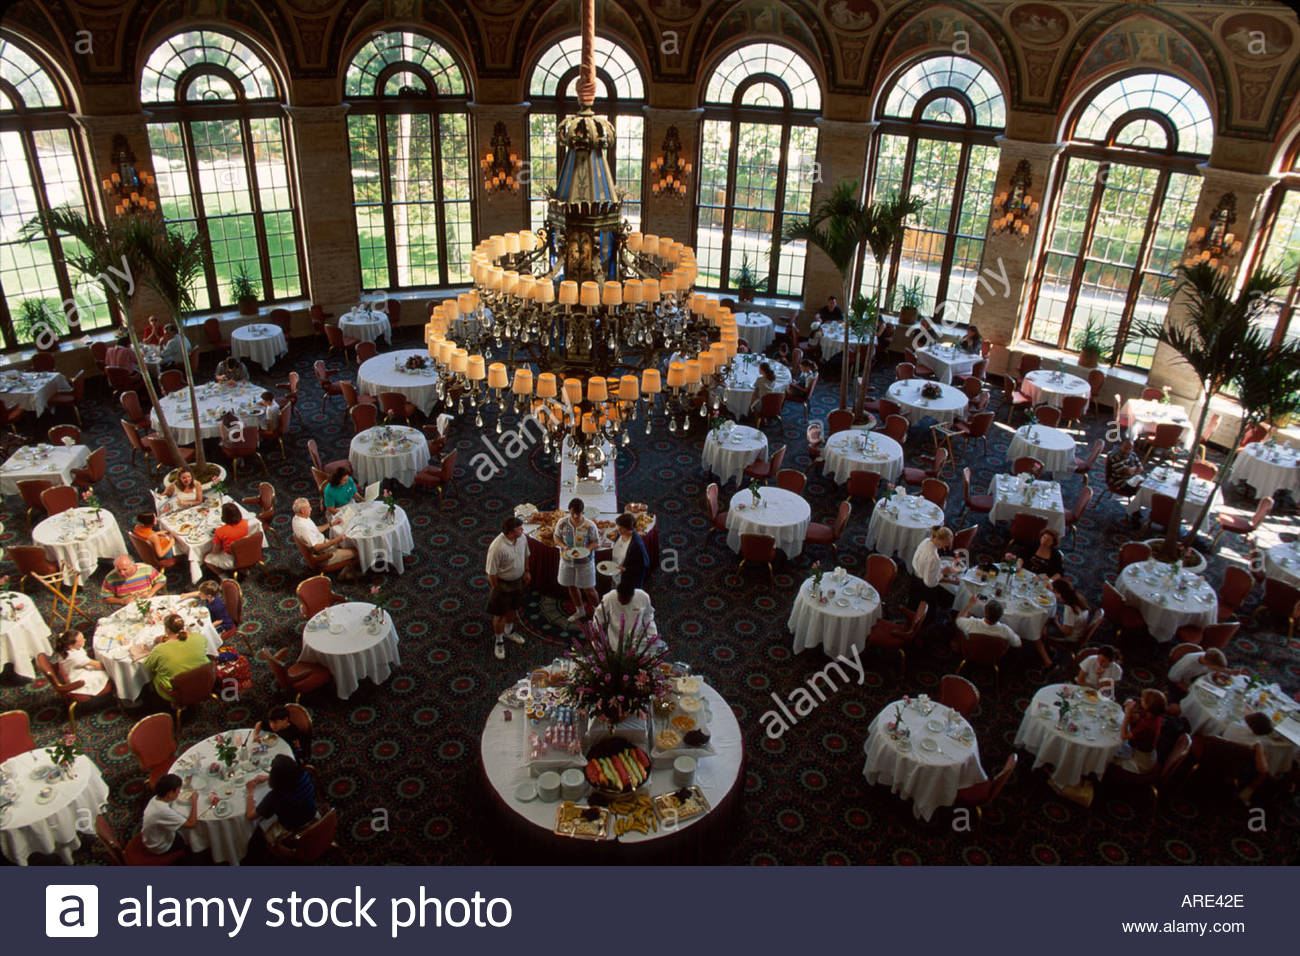 Palm Beach Florida The Breakers Italian Renaissance Style Five Star Hotel Circle Dining Room Breakfast Buffet